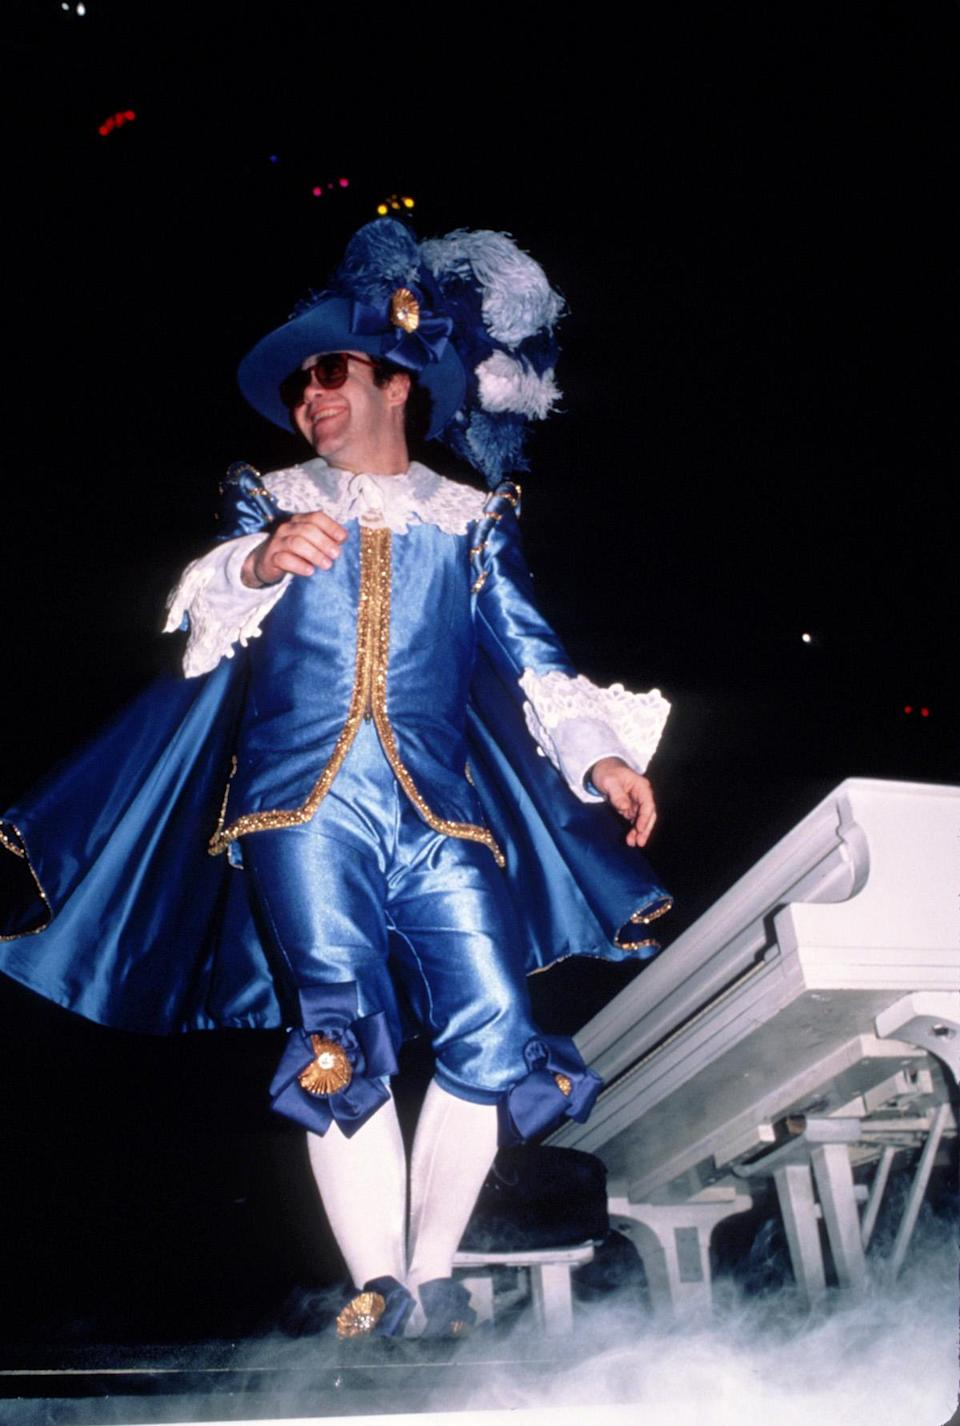 <p>Elton John looking royal in royal blue in 1982. (Photo: Getty Images) </p>